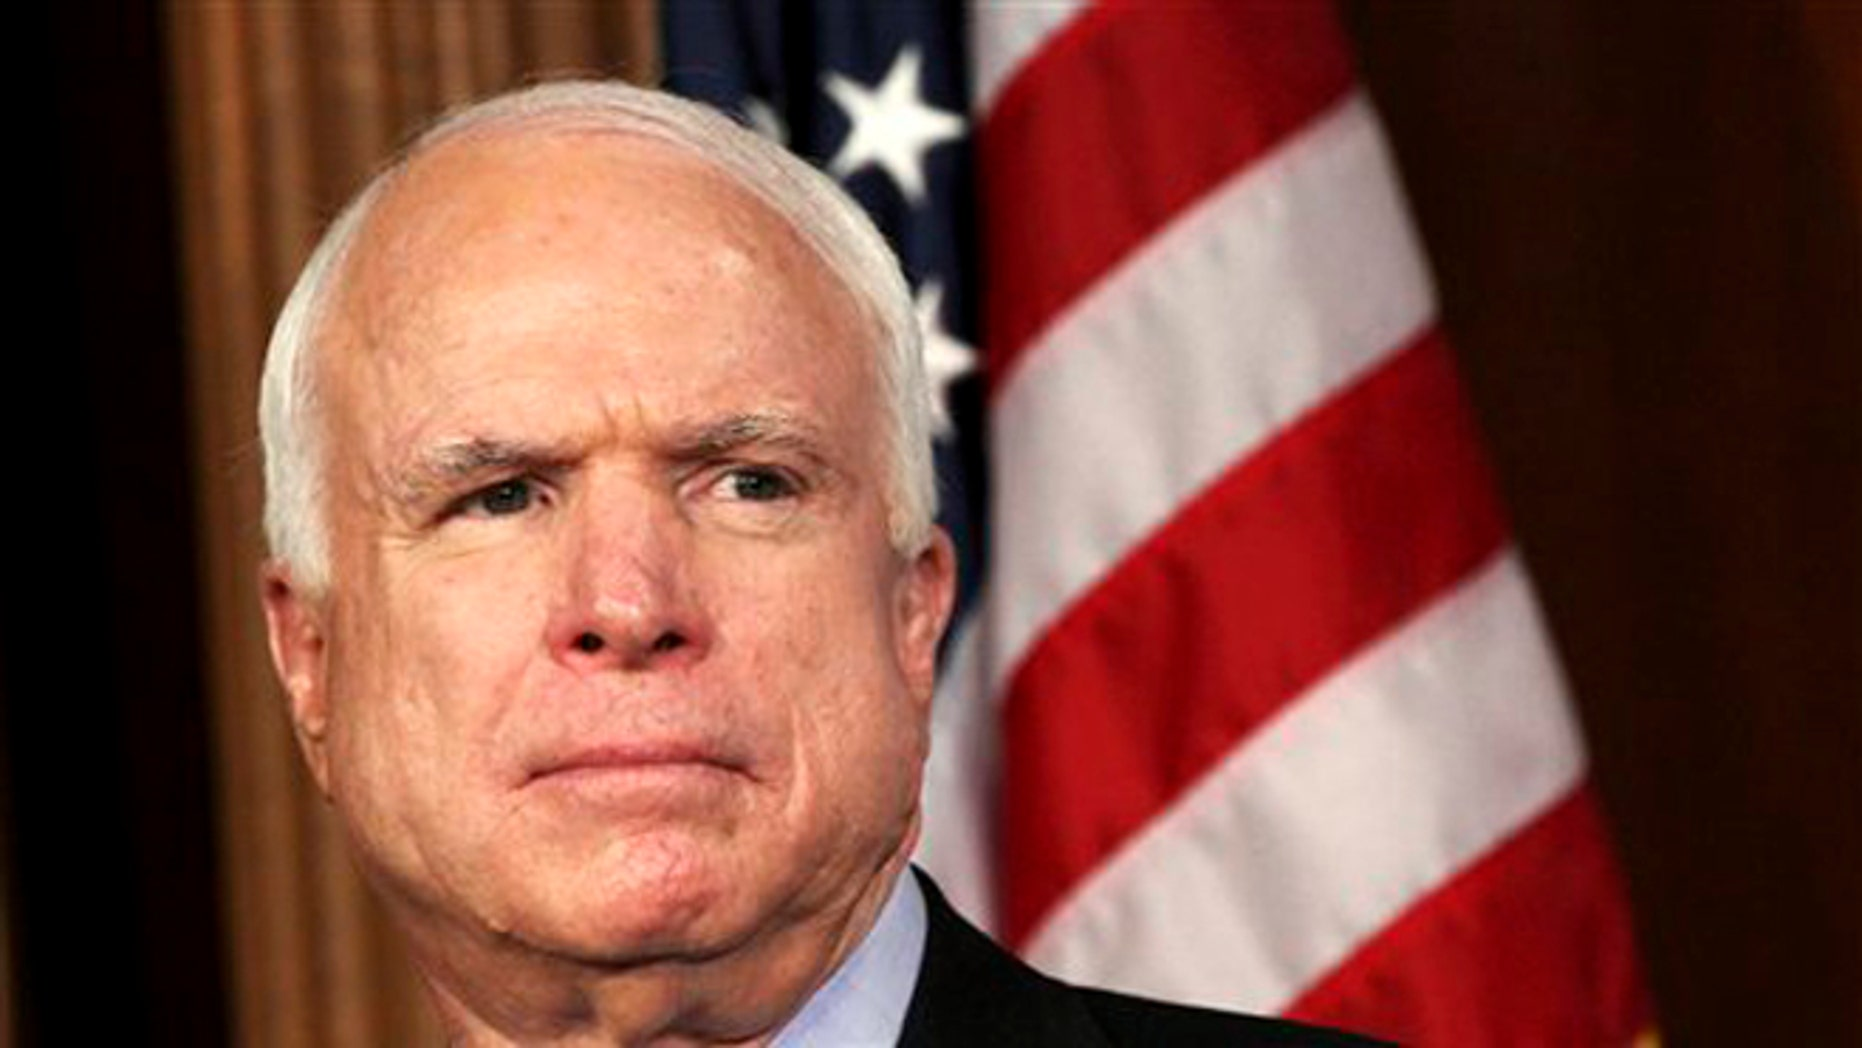 Sen. John McCain, R-Ariz., is defending his old Senate colleague and fellow Vietnam veteran.